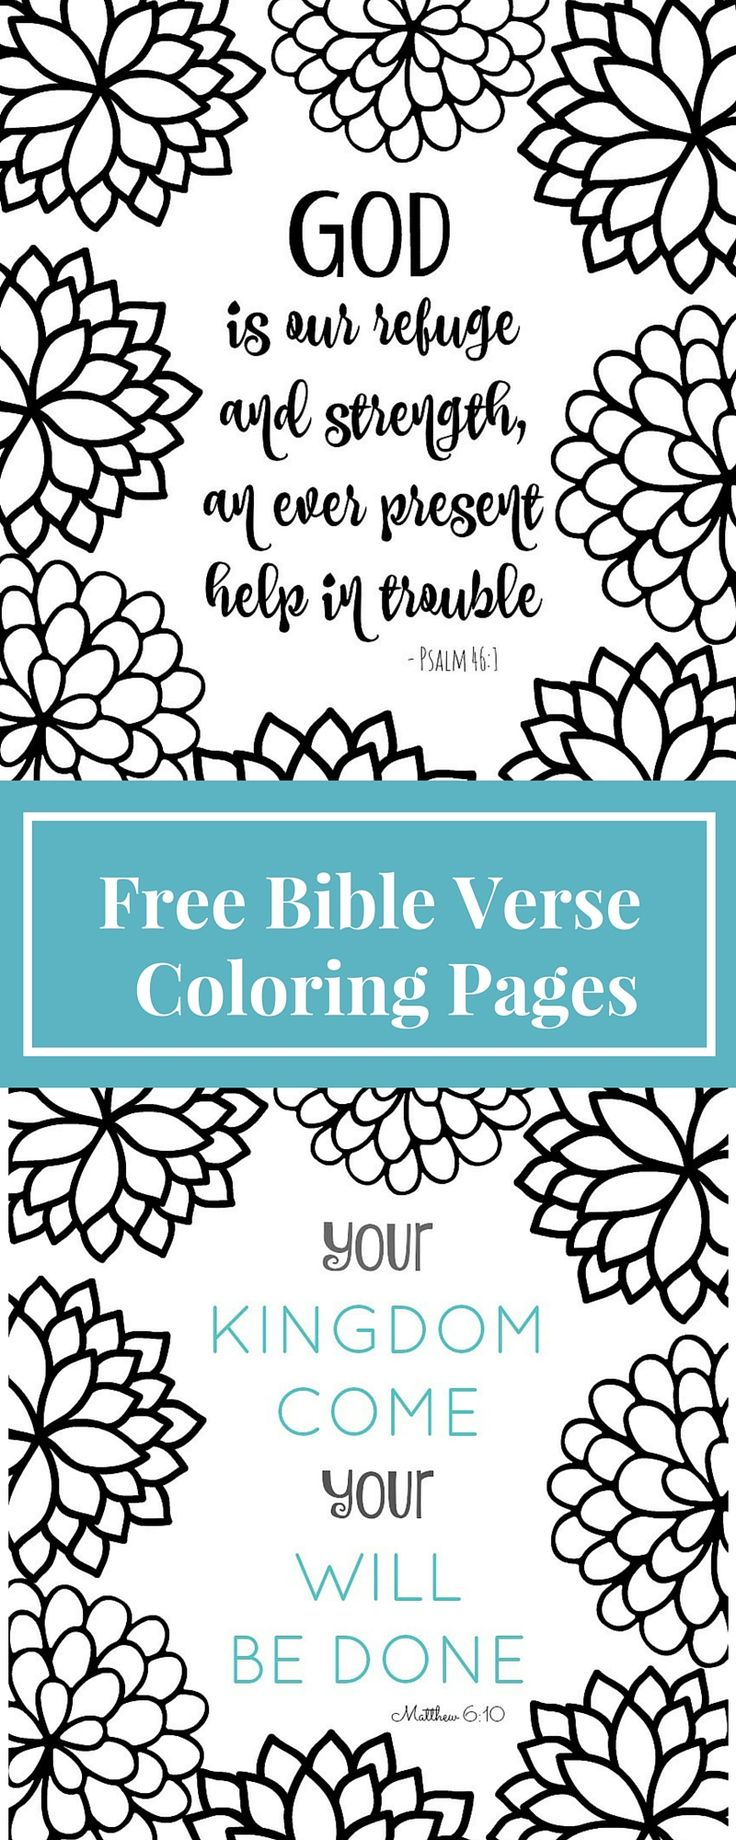 Coloring pages 6 year olds - Coloring Pages Are For Grown Ups Now These Bible Verse Coloring Page Printables Are Fun